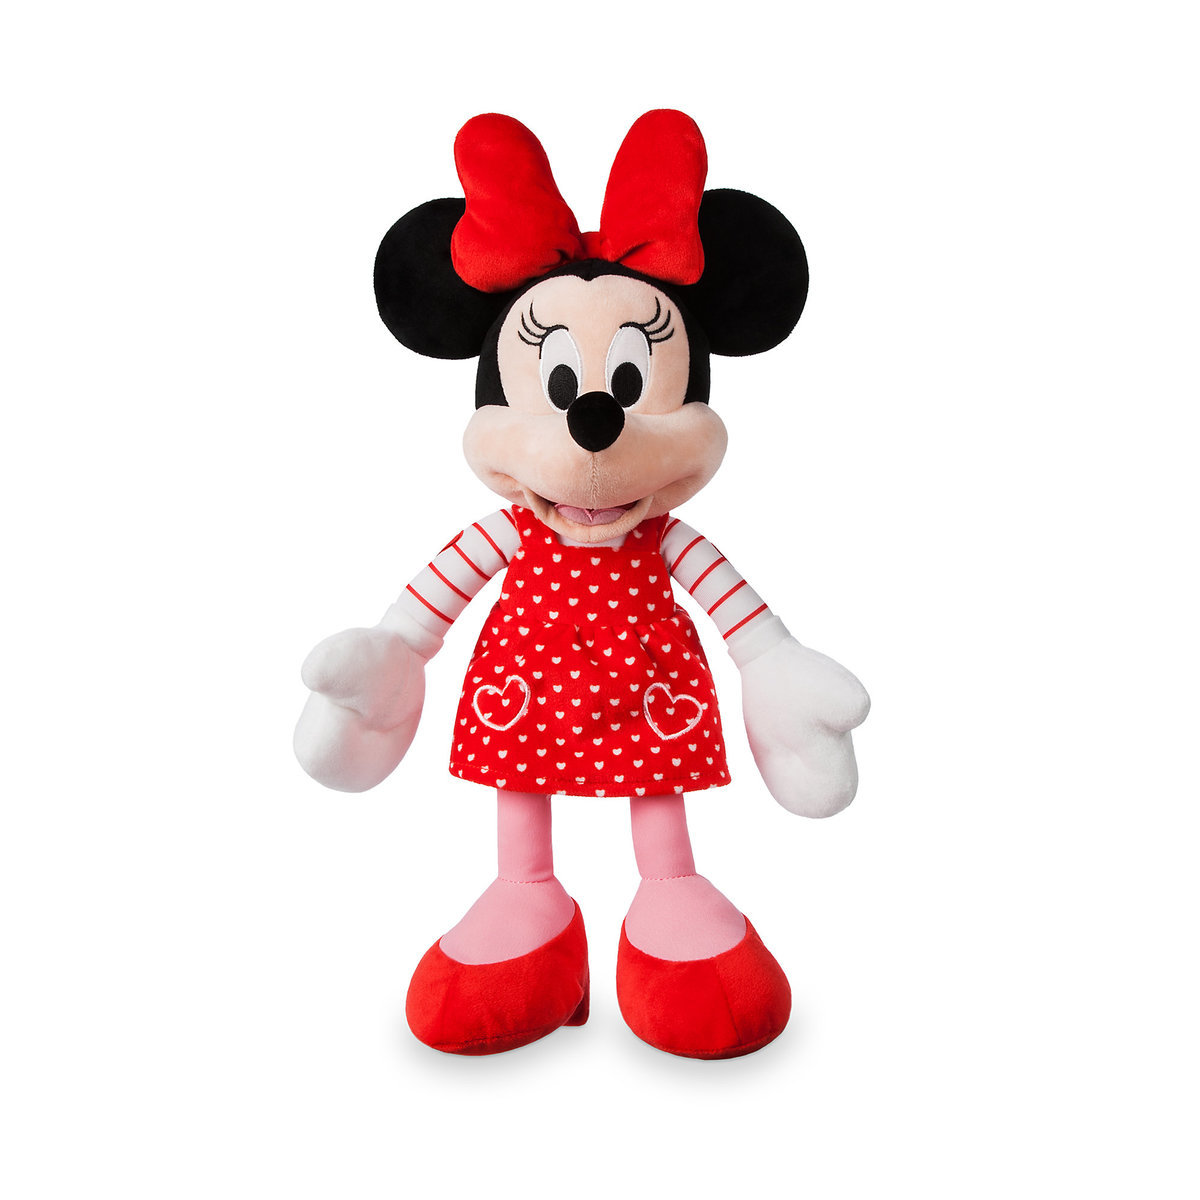 f369ff0c2 Product Image of Minnie Mouse Sweetheart Plush - Small - 15'' # 1